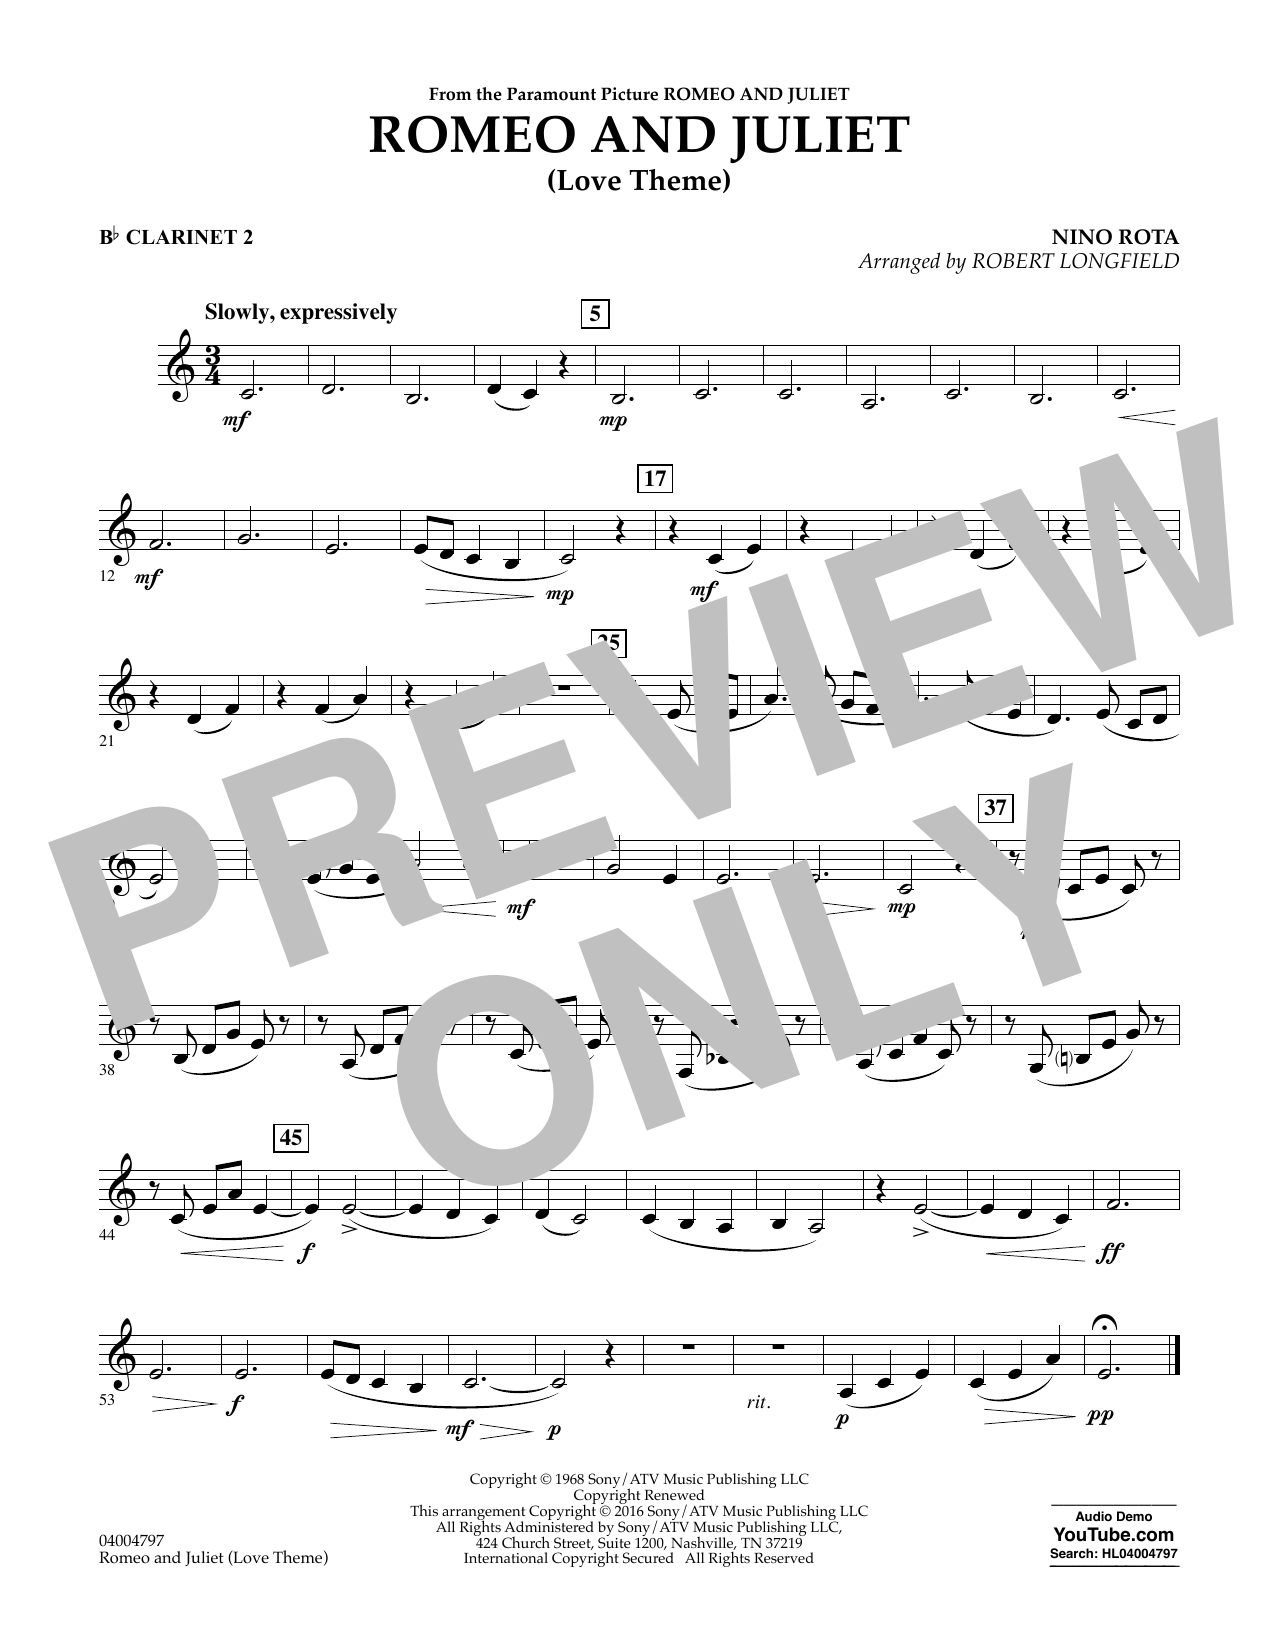 Romeo and Juliet (Love Theme) - Bb Clarinet 2 (Concert Band)